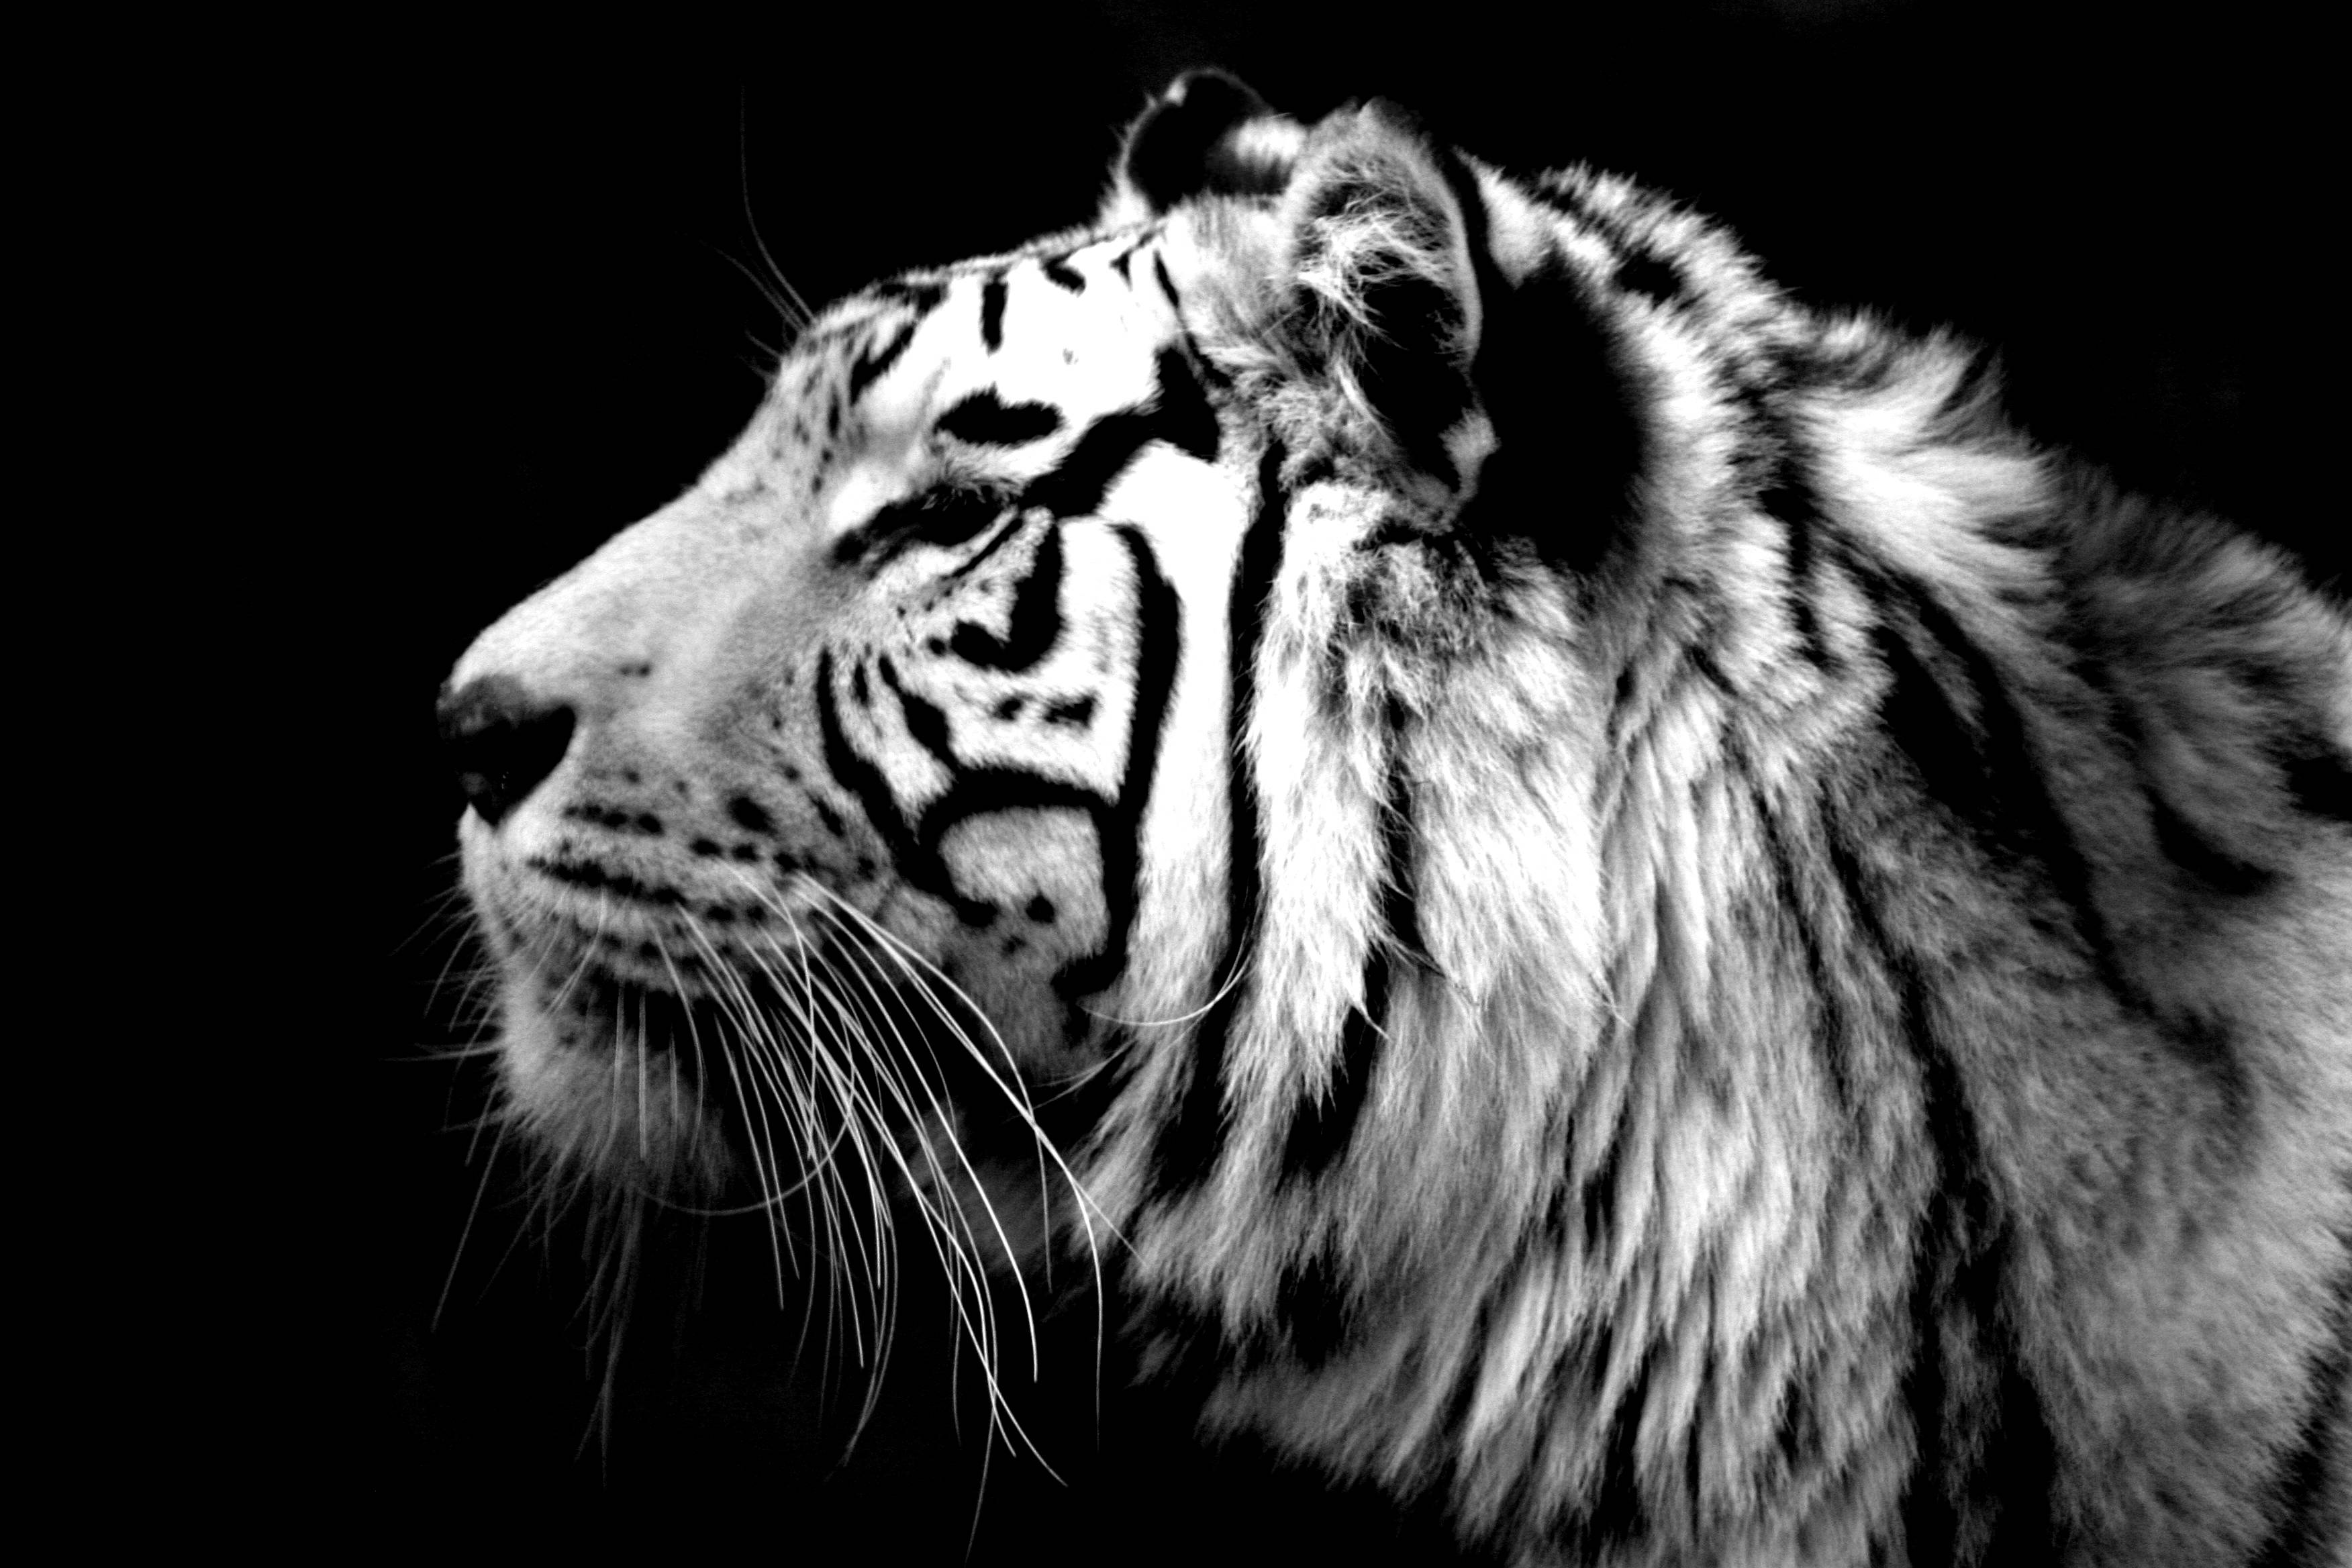 Tiger Wallpaper Black And White Posted By Michelle Simpson